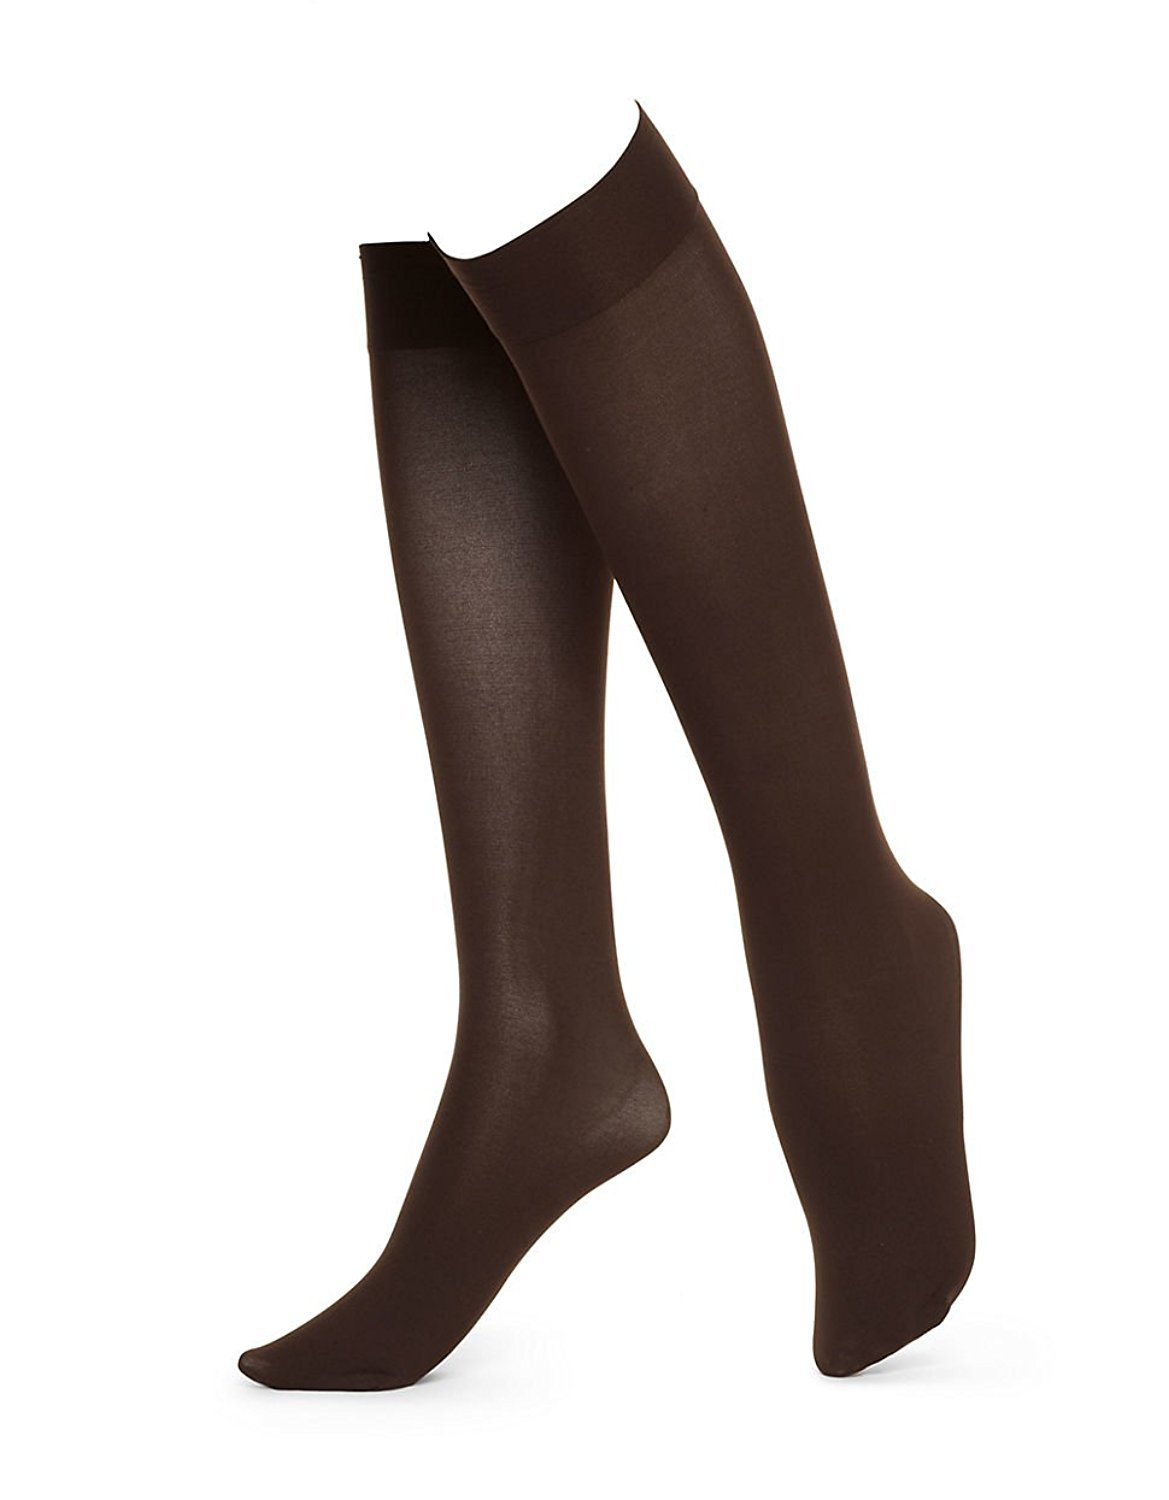 Women/'s Trouser Socks Opaque Stretchy Nylon Knee High Many Colors 6 or 12 Pairs